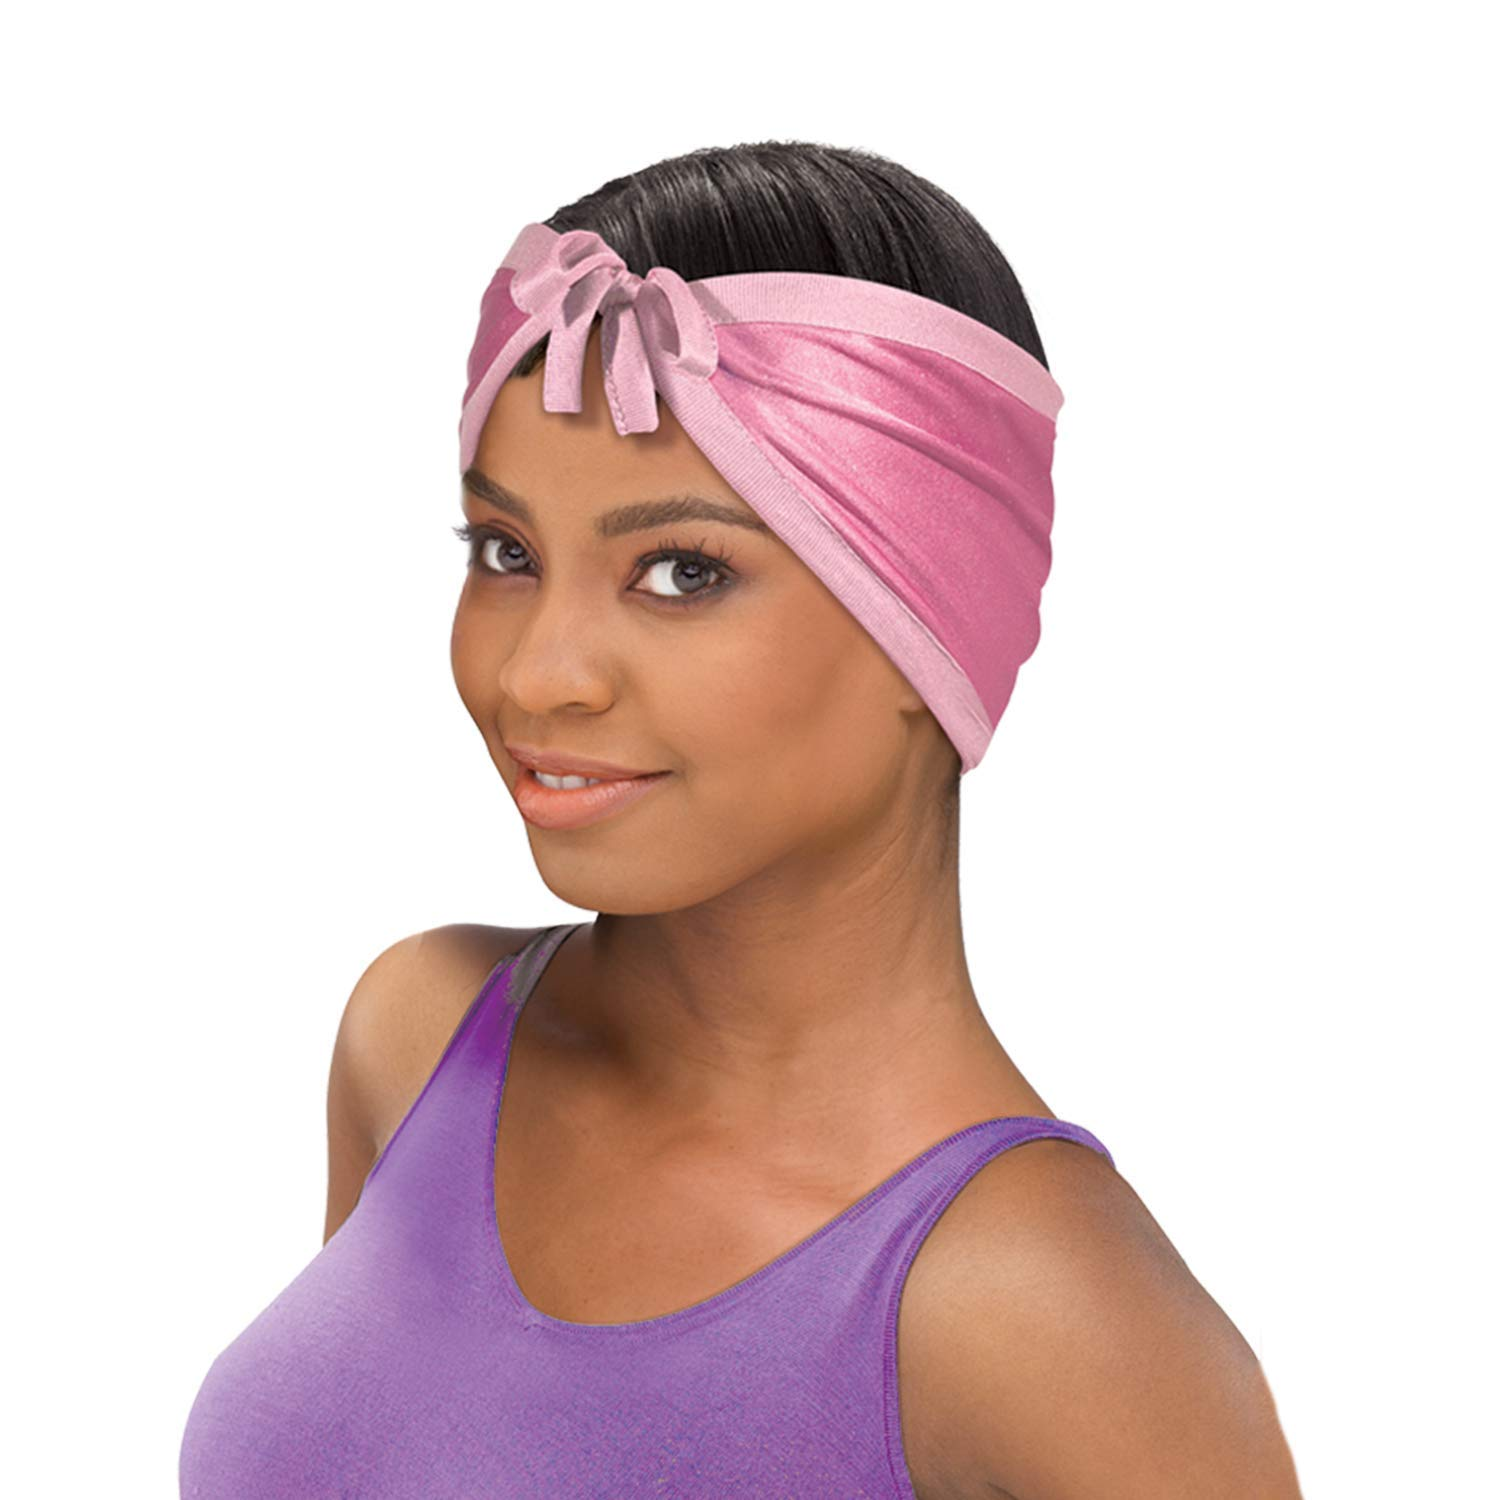 Stay On Satin Wrap Cap, 3 Pack 769/C3